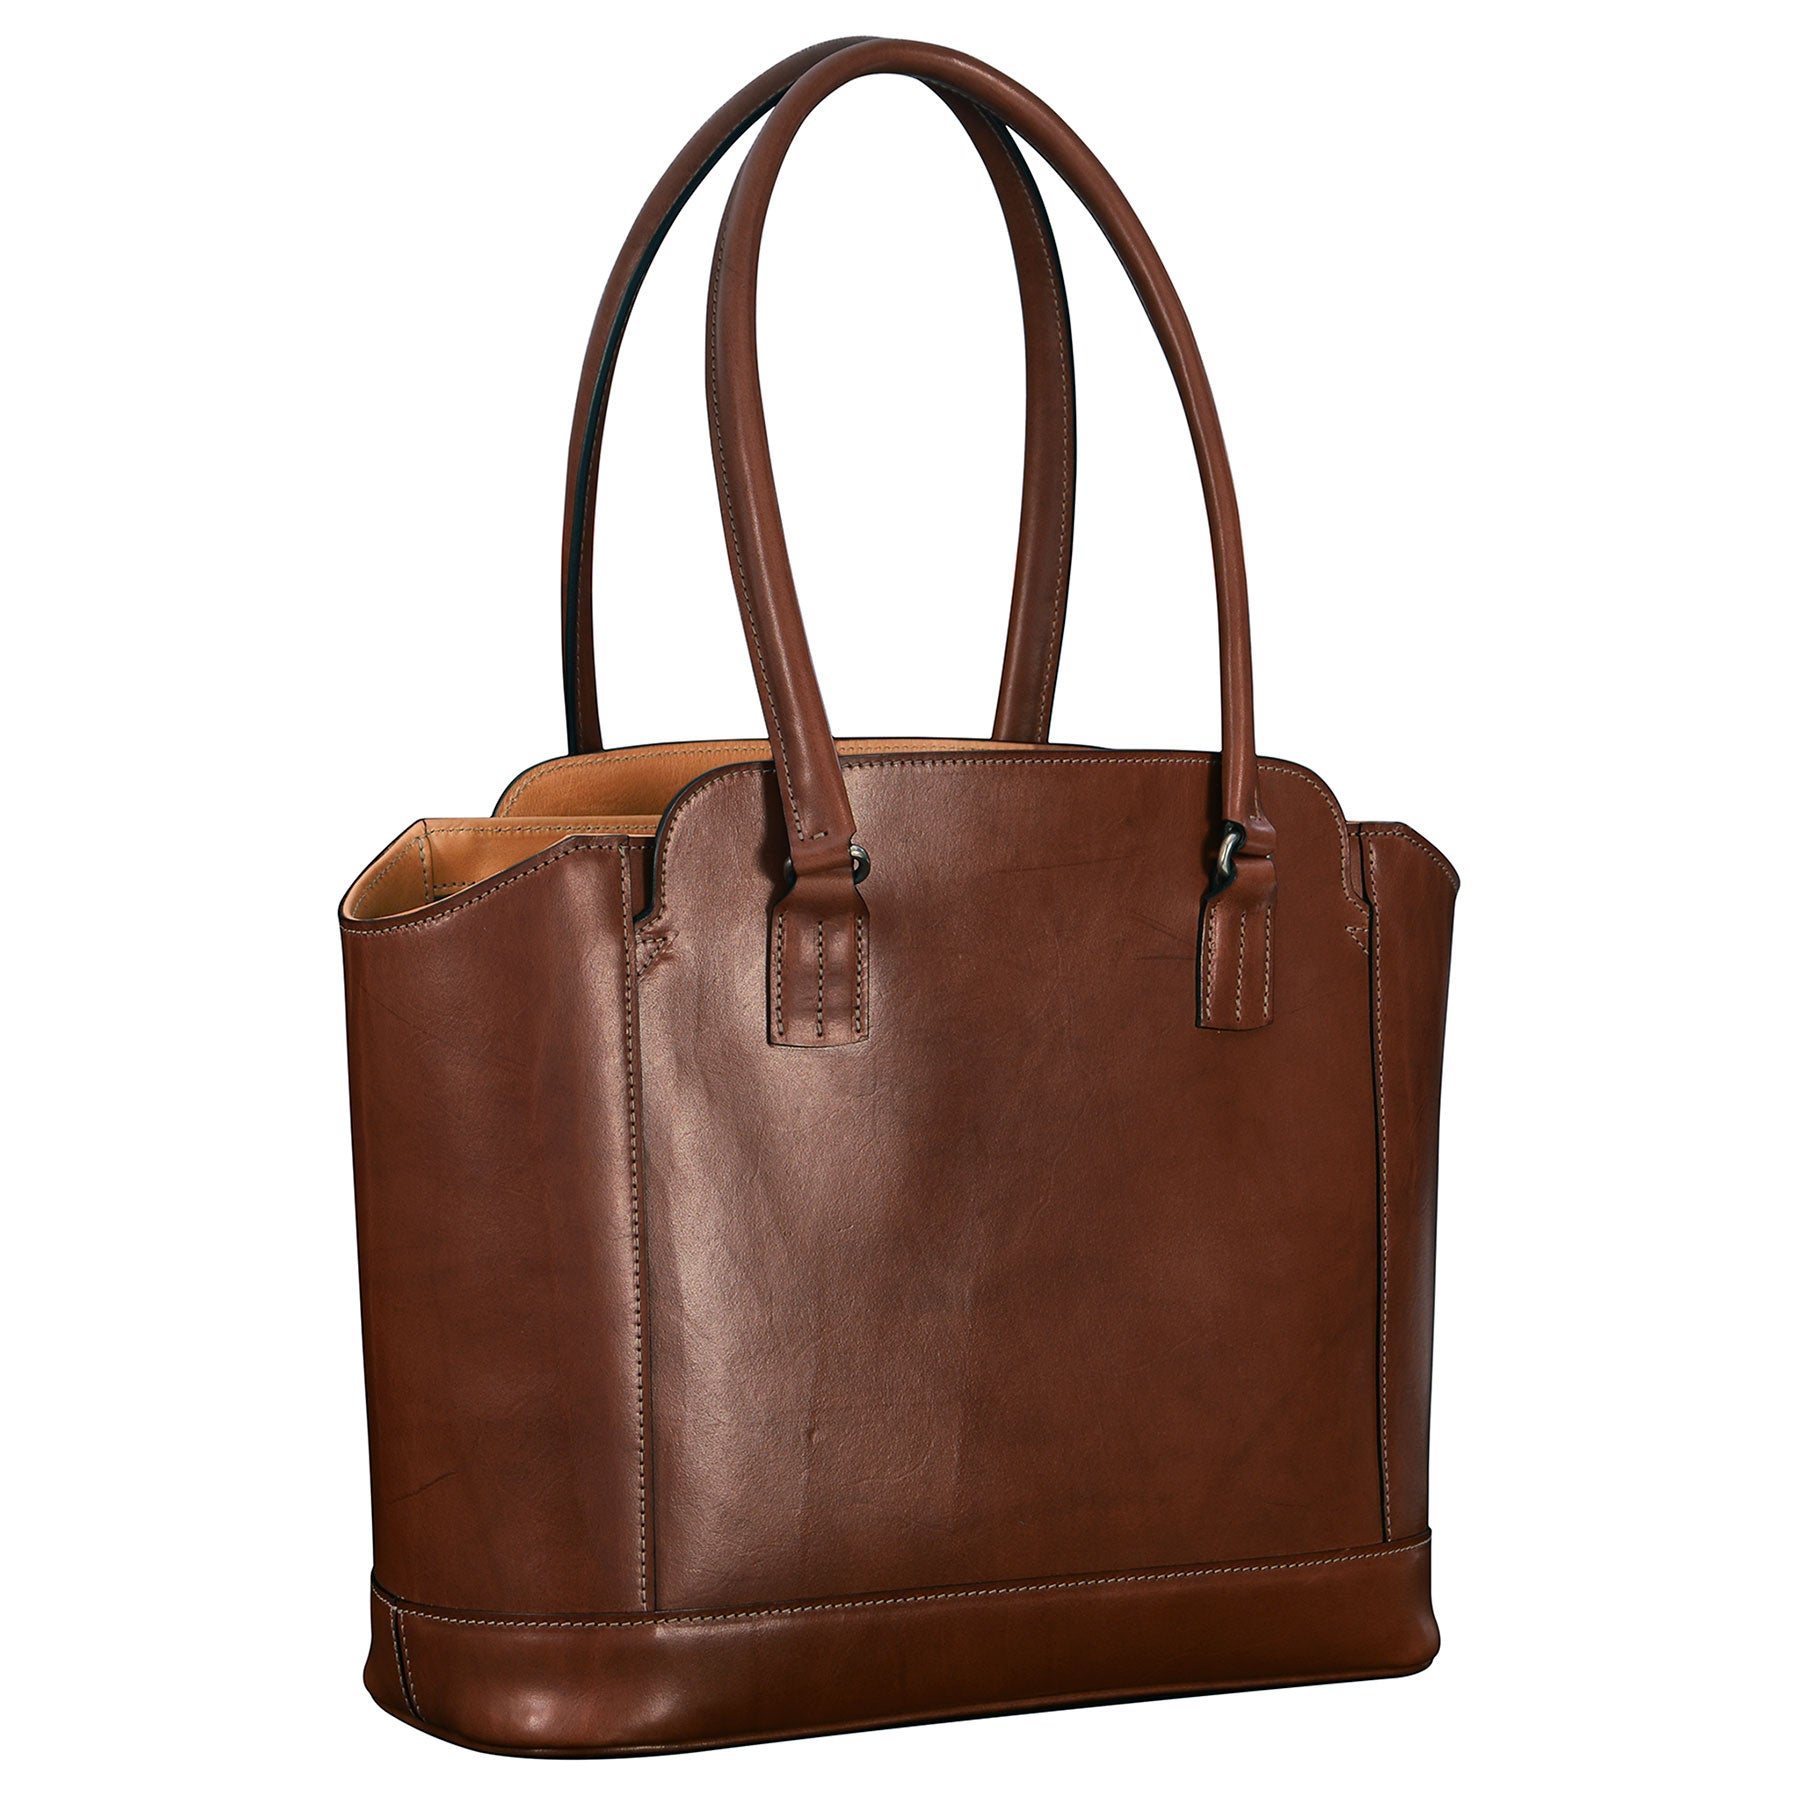 Glaser Designs City Tote with Long Handles in Hand burnished Espresso vegetable tanned leather. Solid brass hardware. Made to measure, custom sizes.